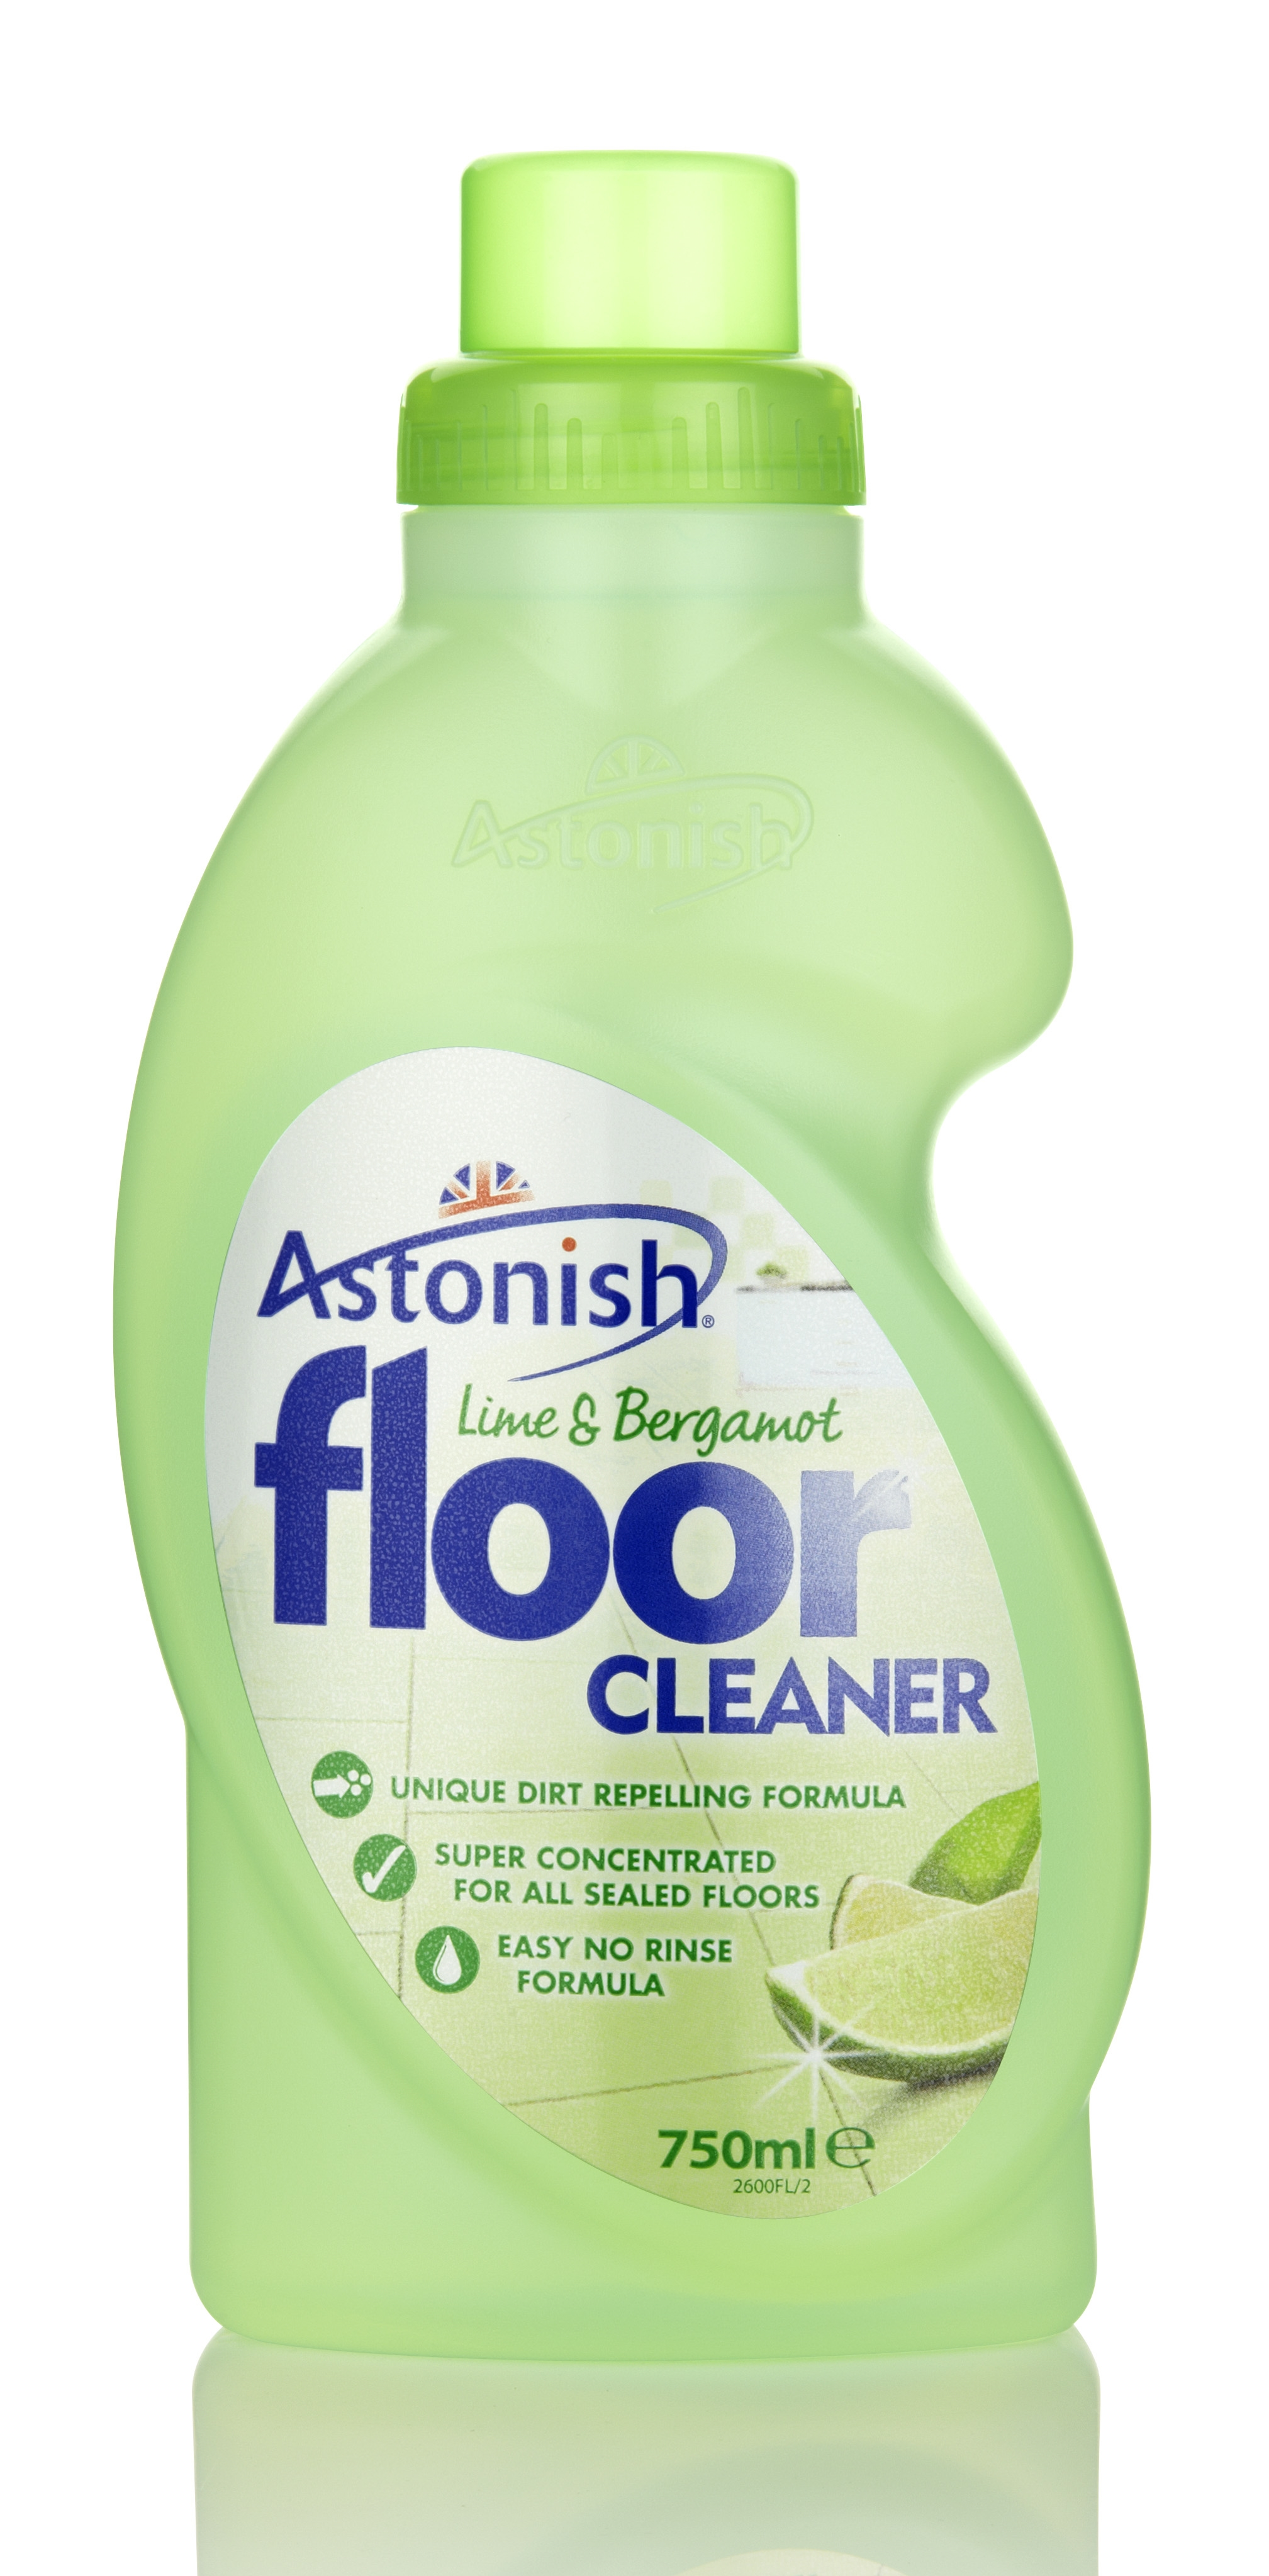 Astonish Floor Cleaner Lime & Beramot 750ml.jpg